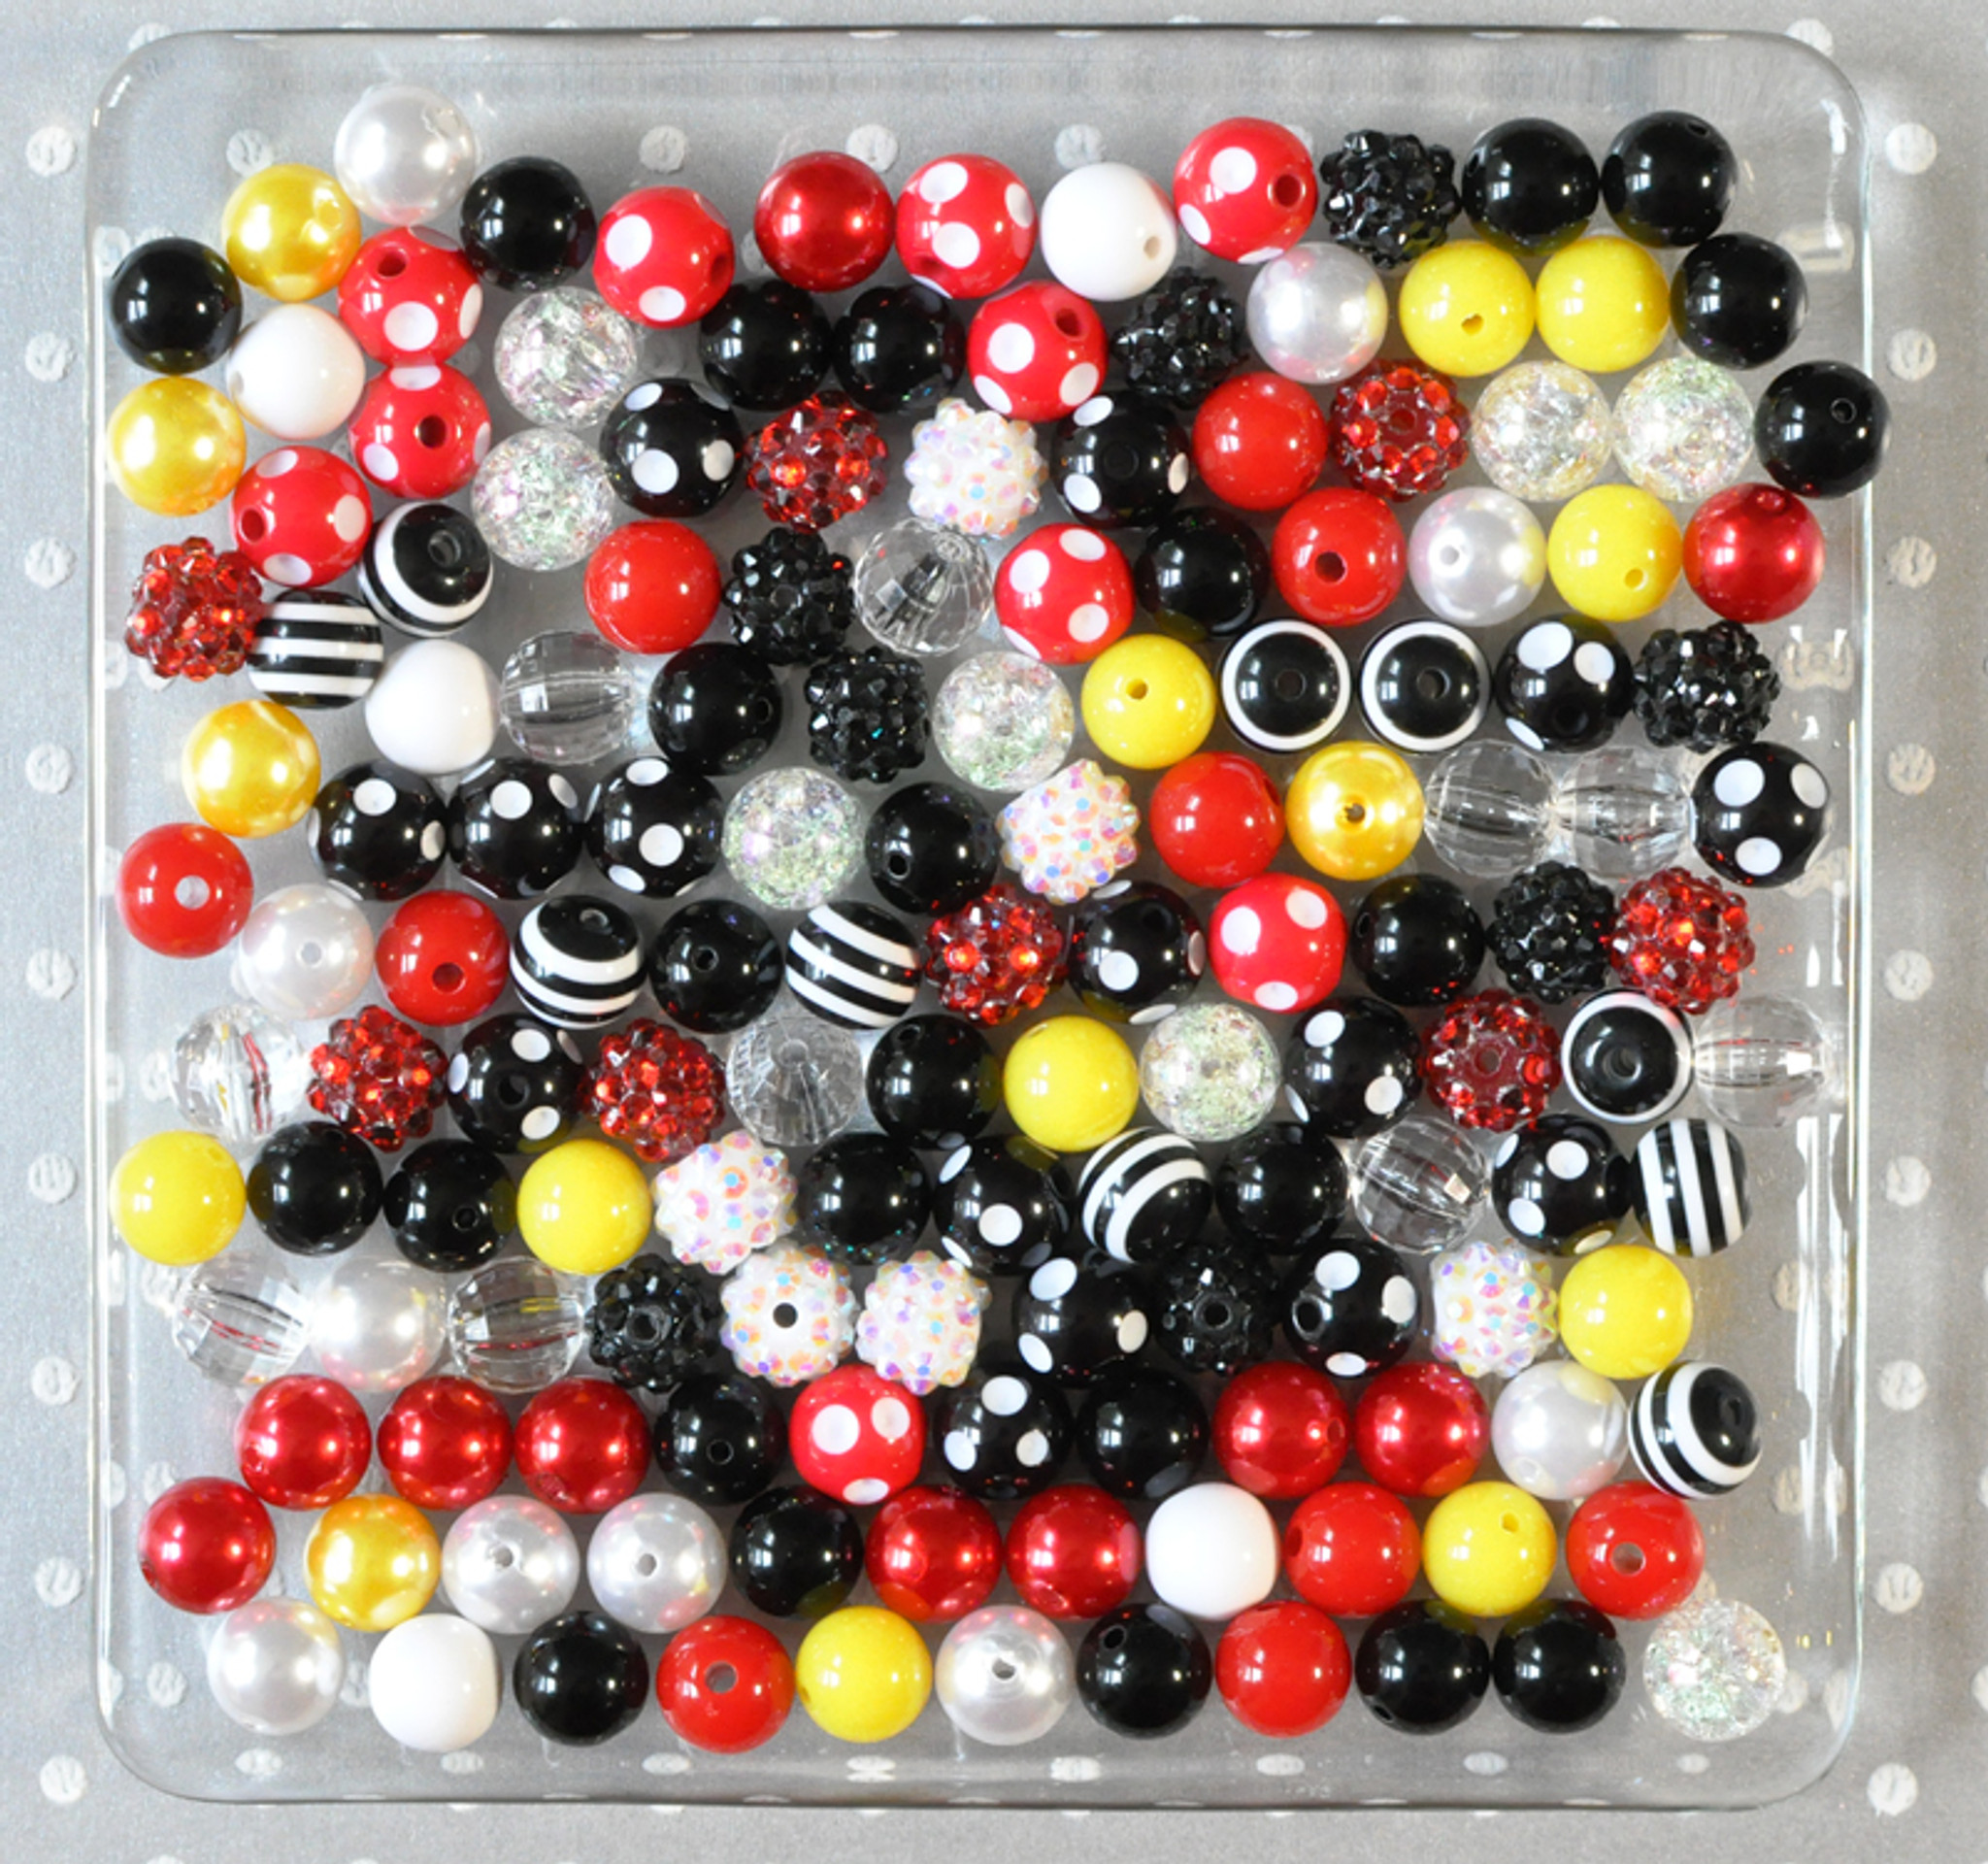 12mm Red, black, yellow bubblegum bead mix